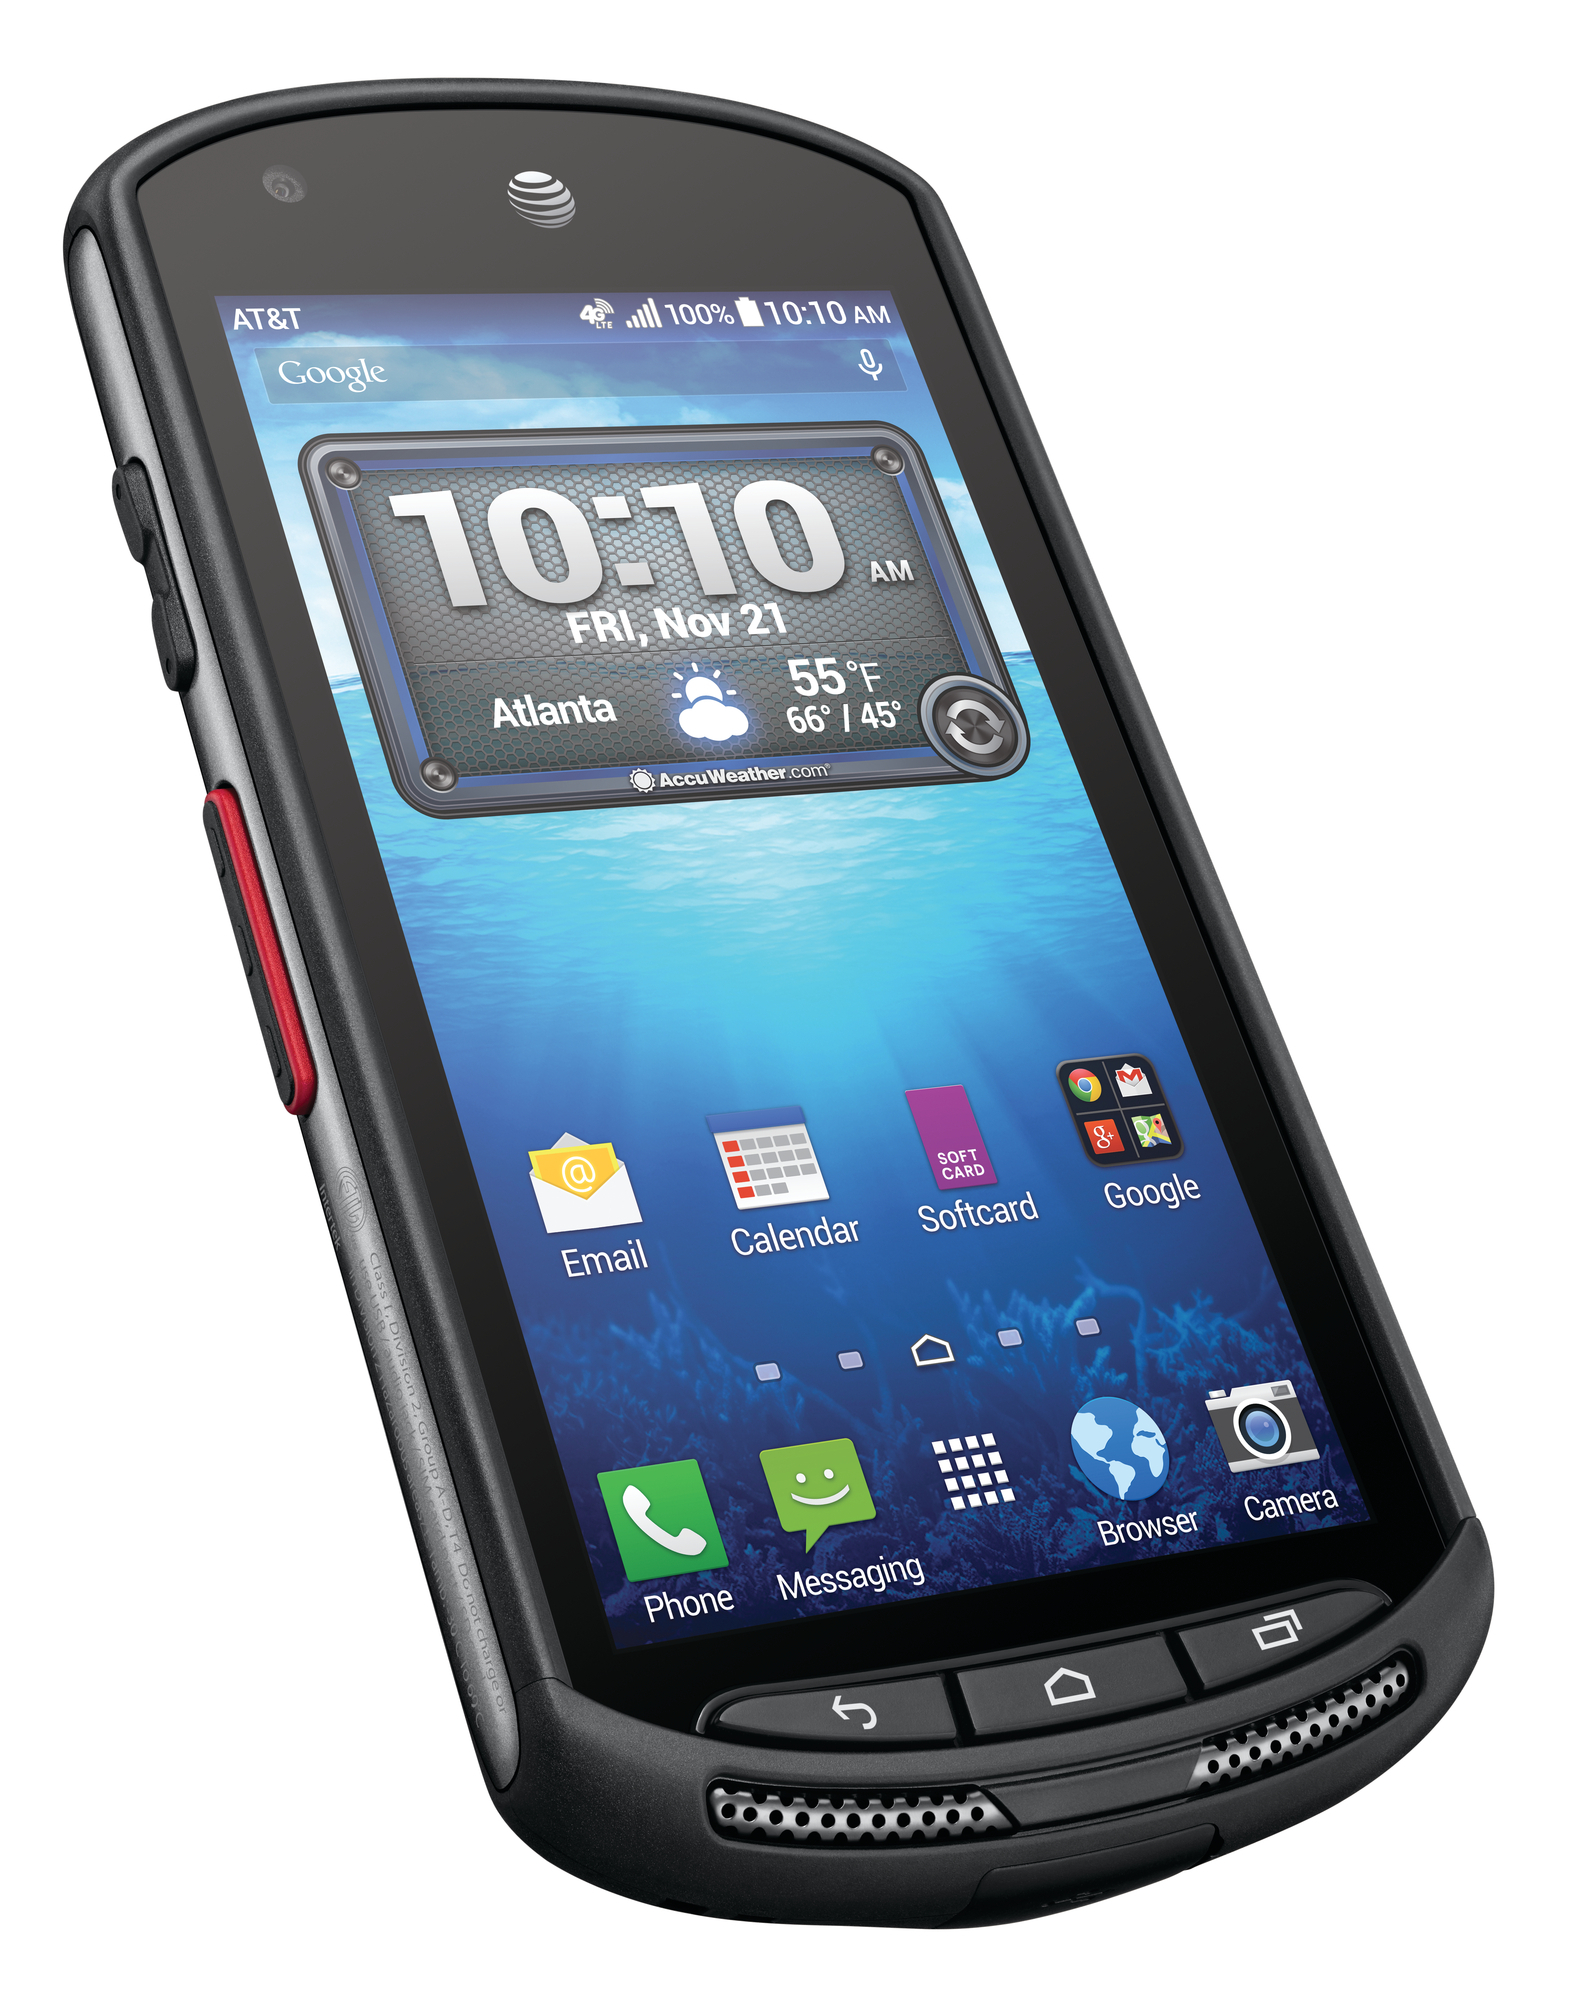 Att Phones Wire Trusted Wiring Diagram Kyocera Duraforce Rugged Android Smartphone Joins The Nations Most Phone Cord